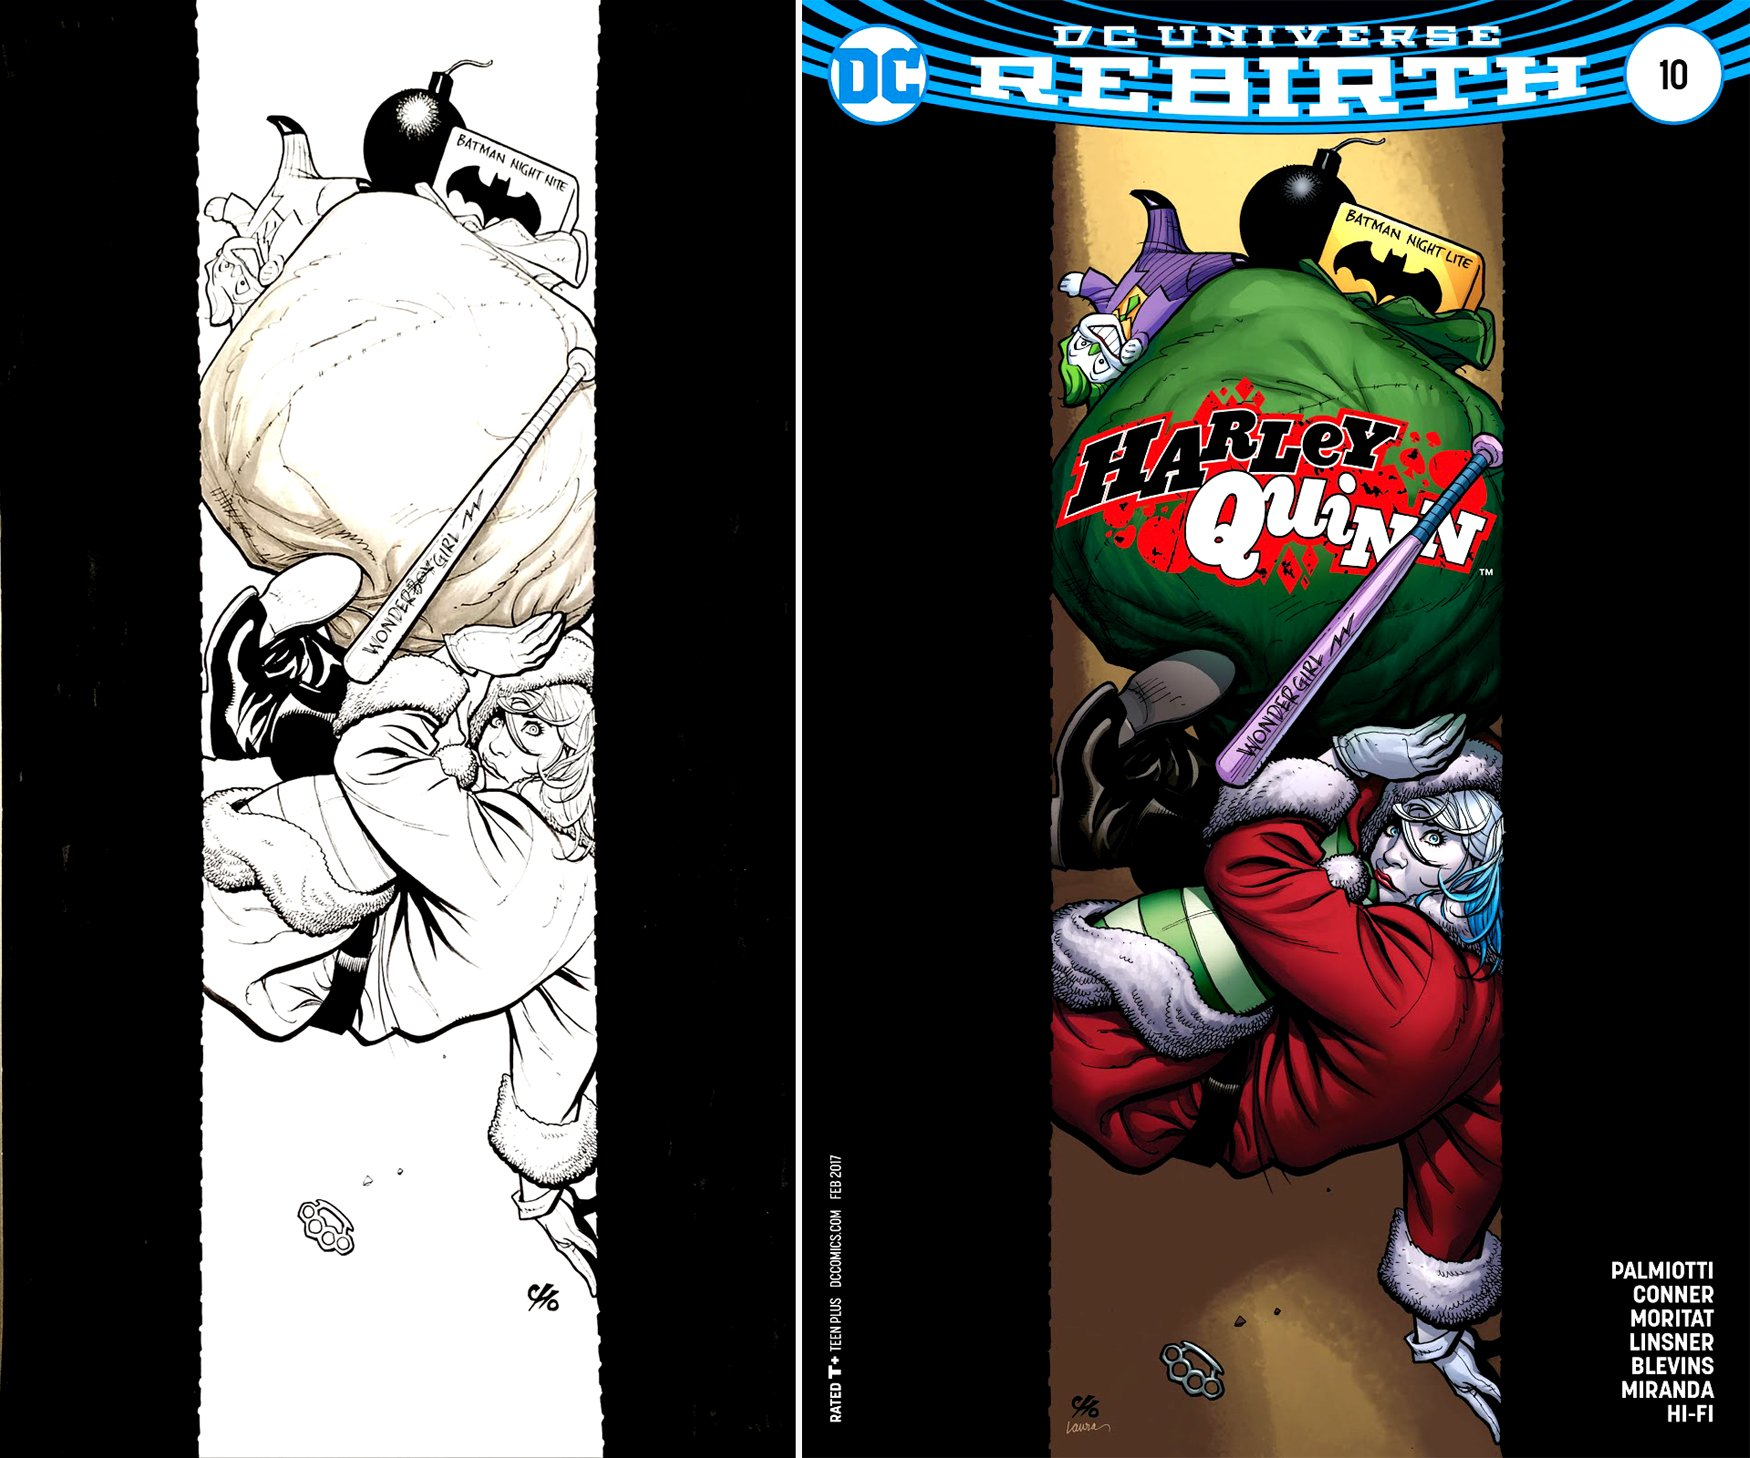 Harley Quinn #10 Cover (VERY LARGE HARLEY CHRISTMAS COVER!) 2016